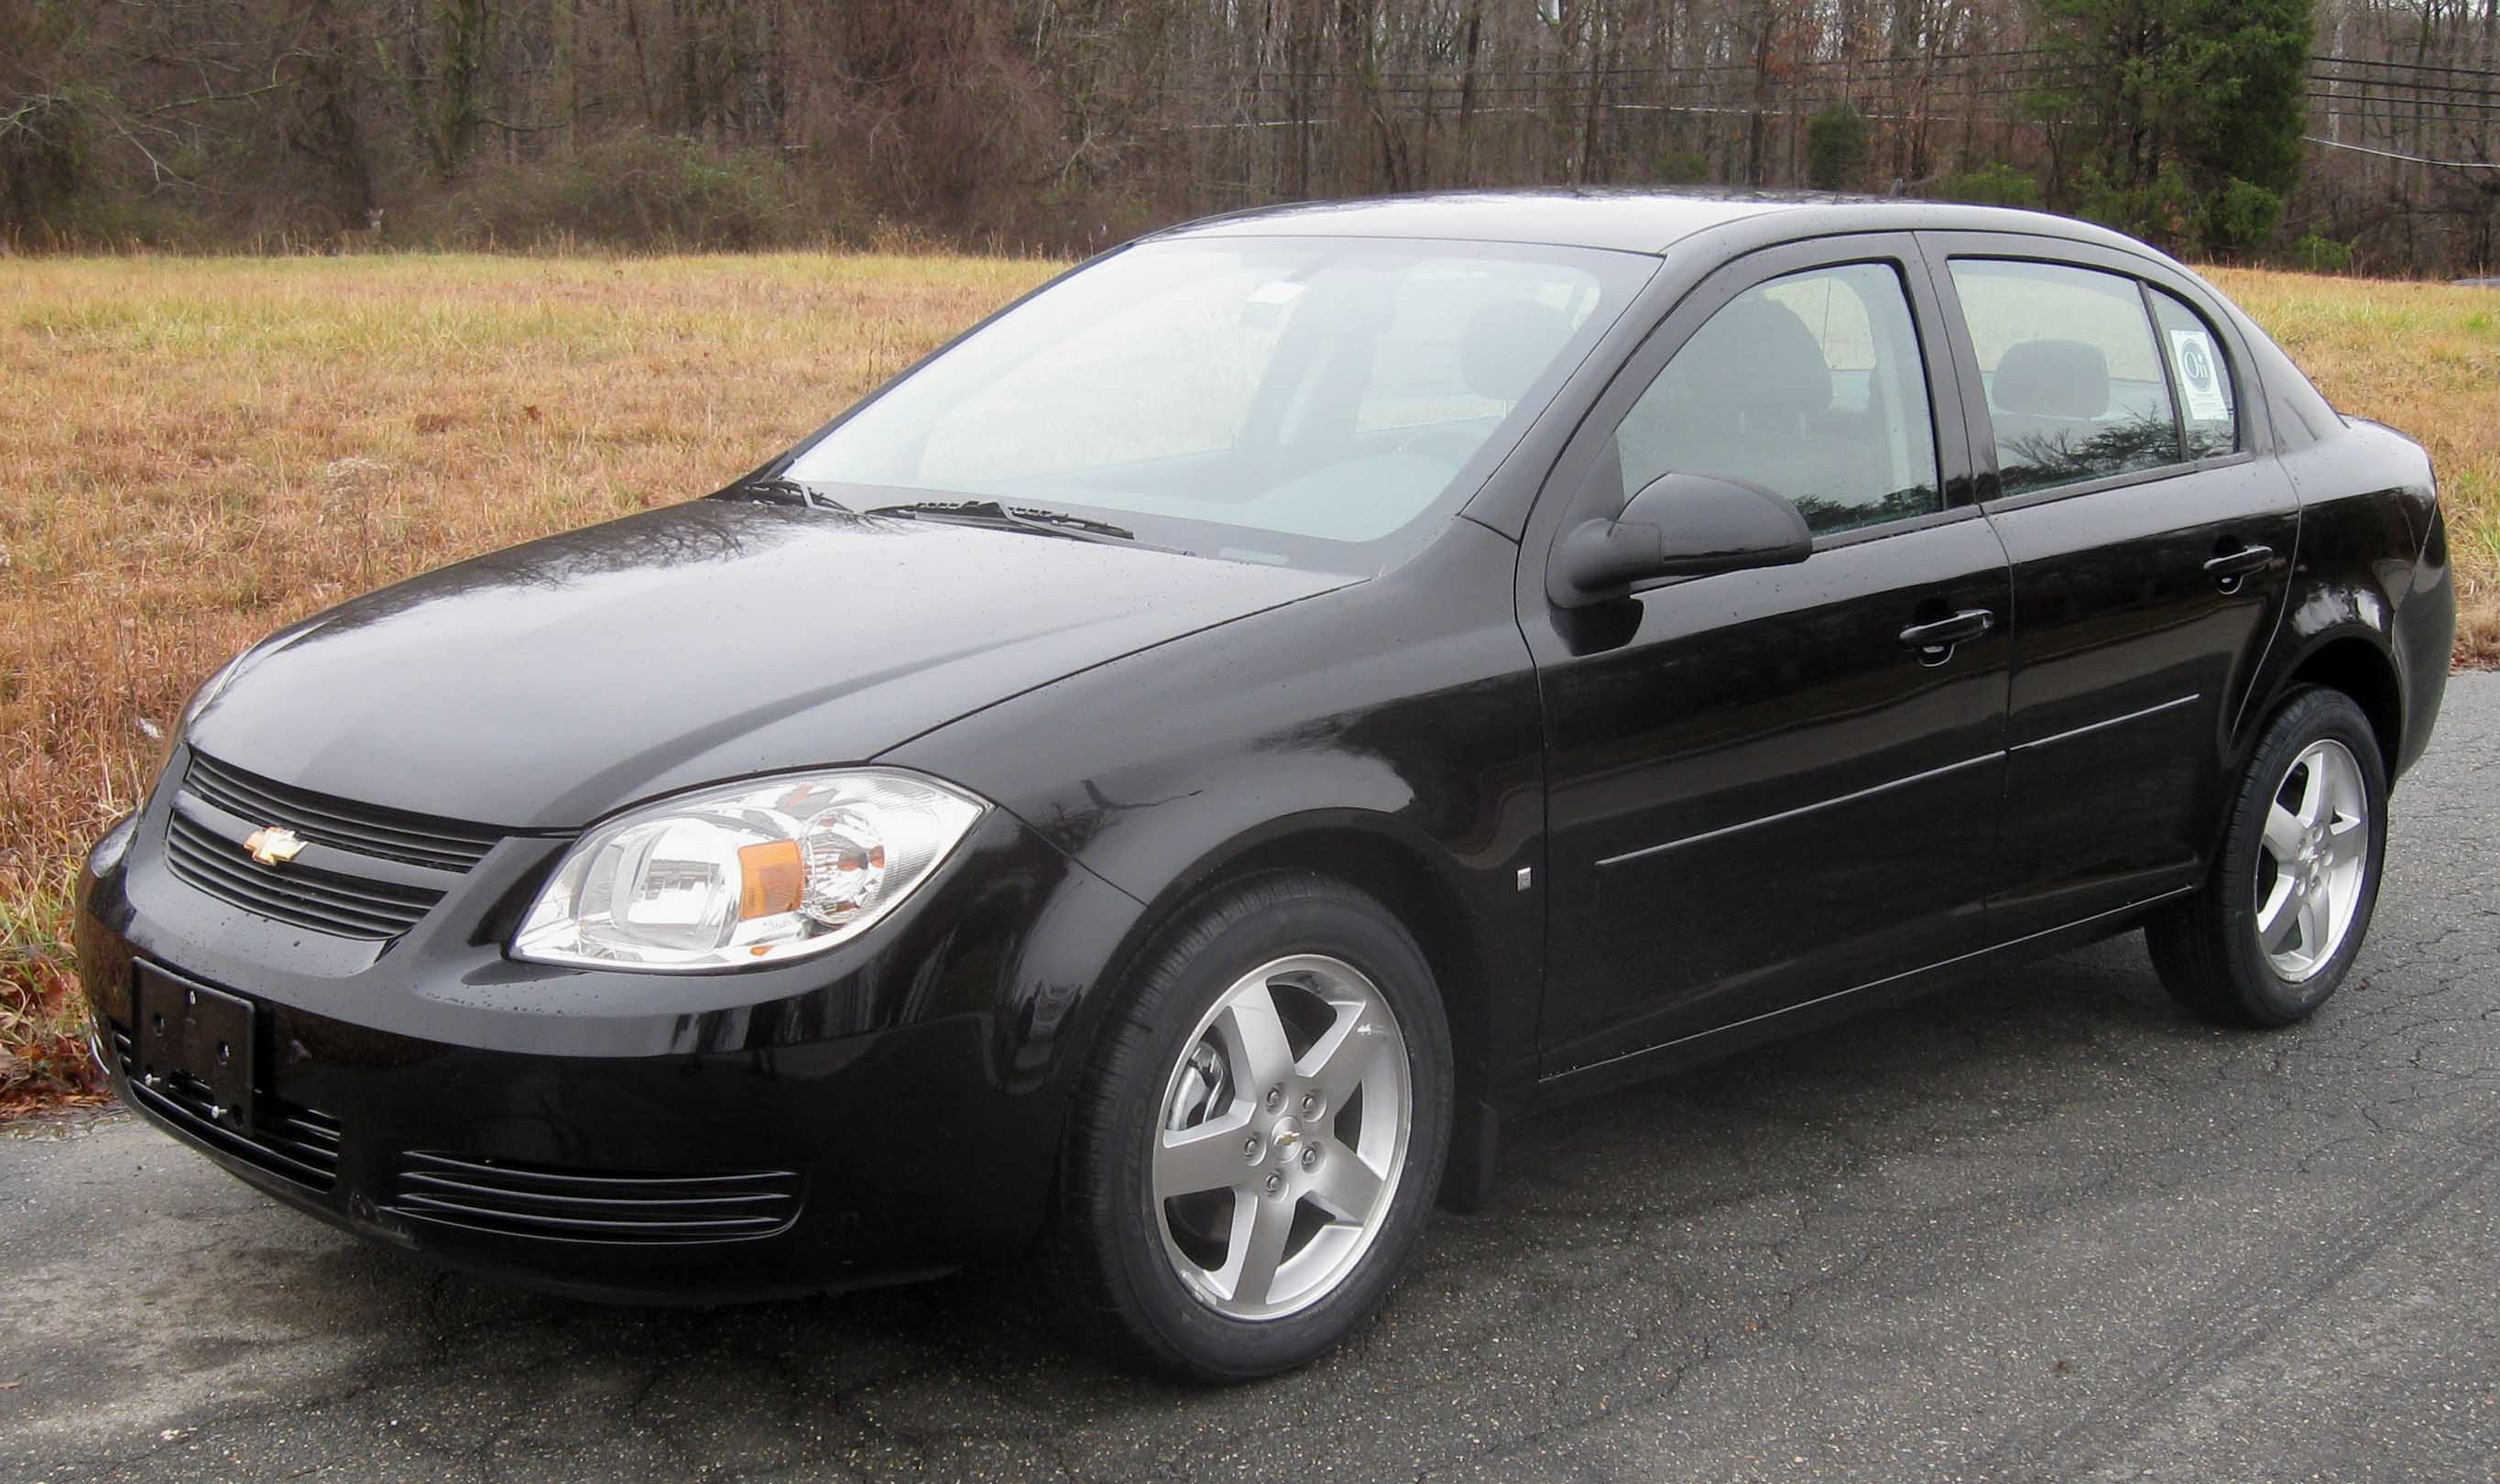 Datei 2009 Chevrolet Cobalt Lt Sedan Jpg Wikipedia